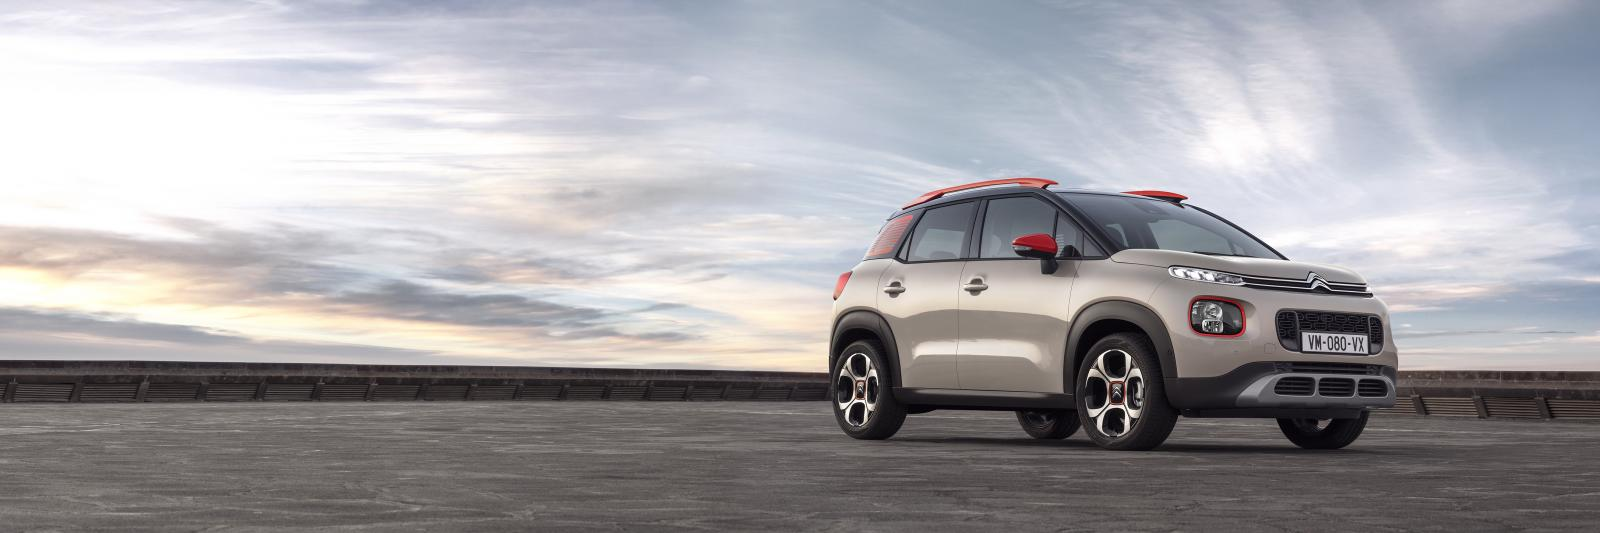 C3 Aircross Compact SUV- 3/4 front